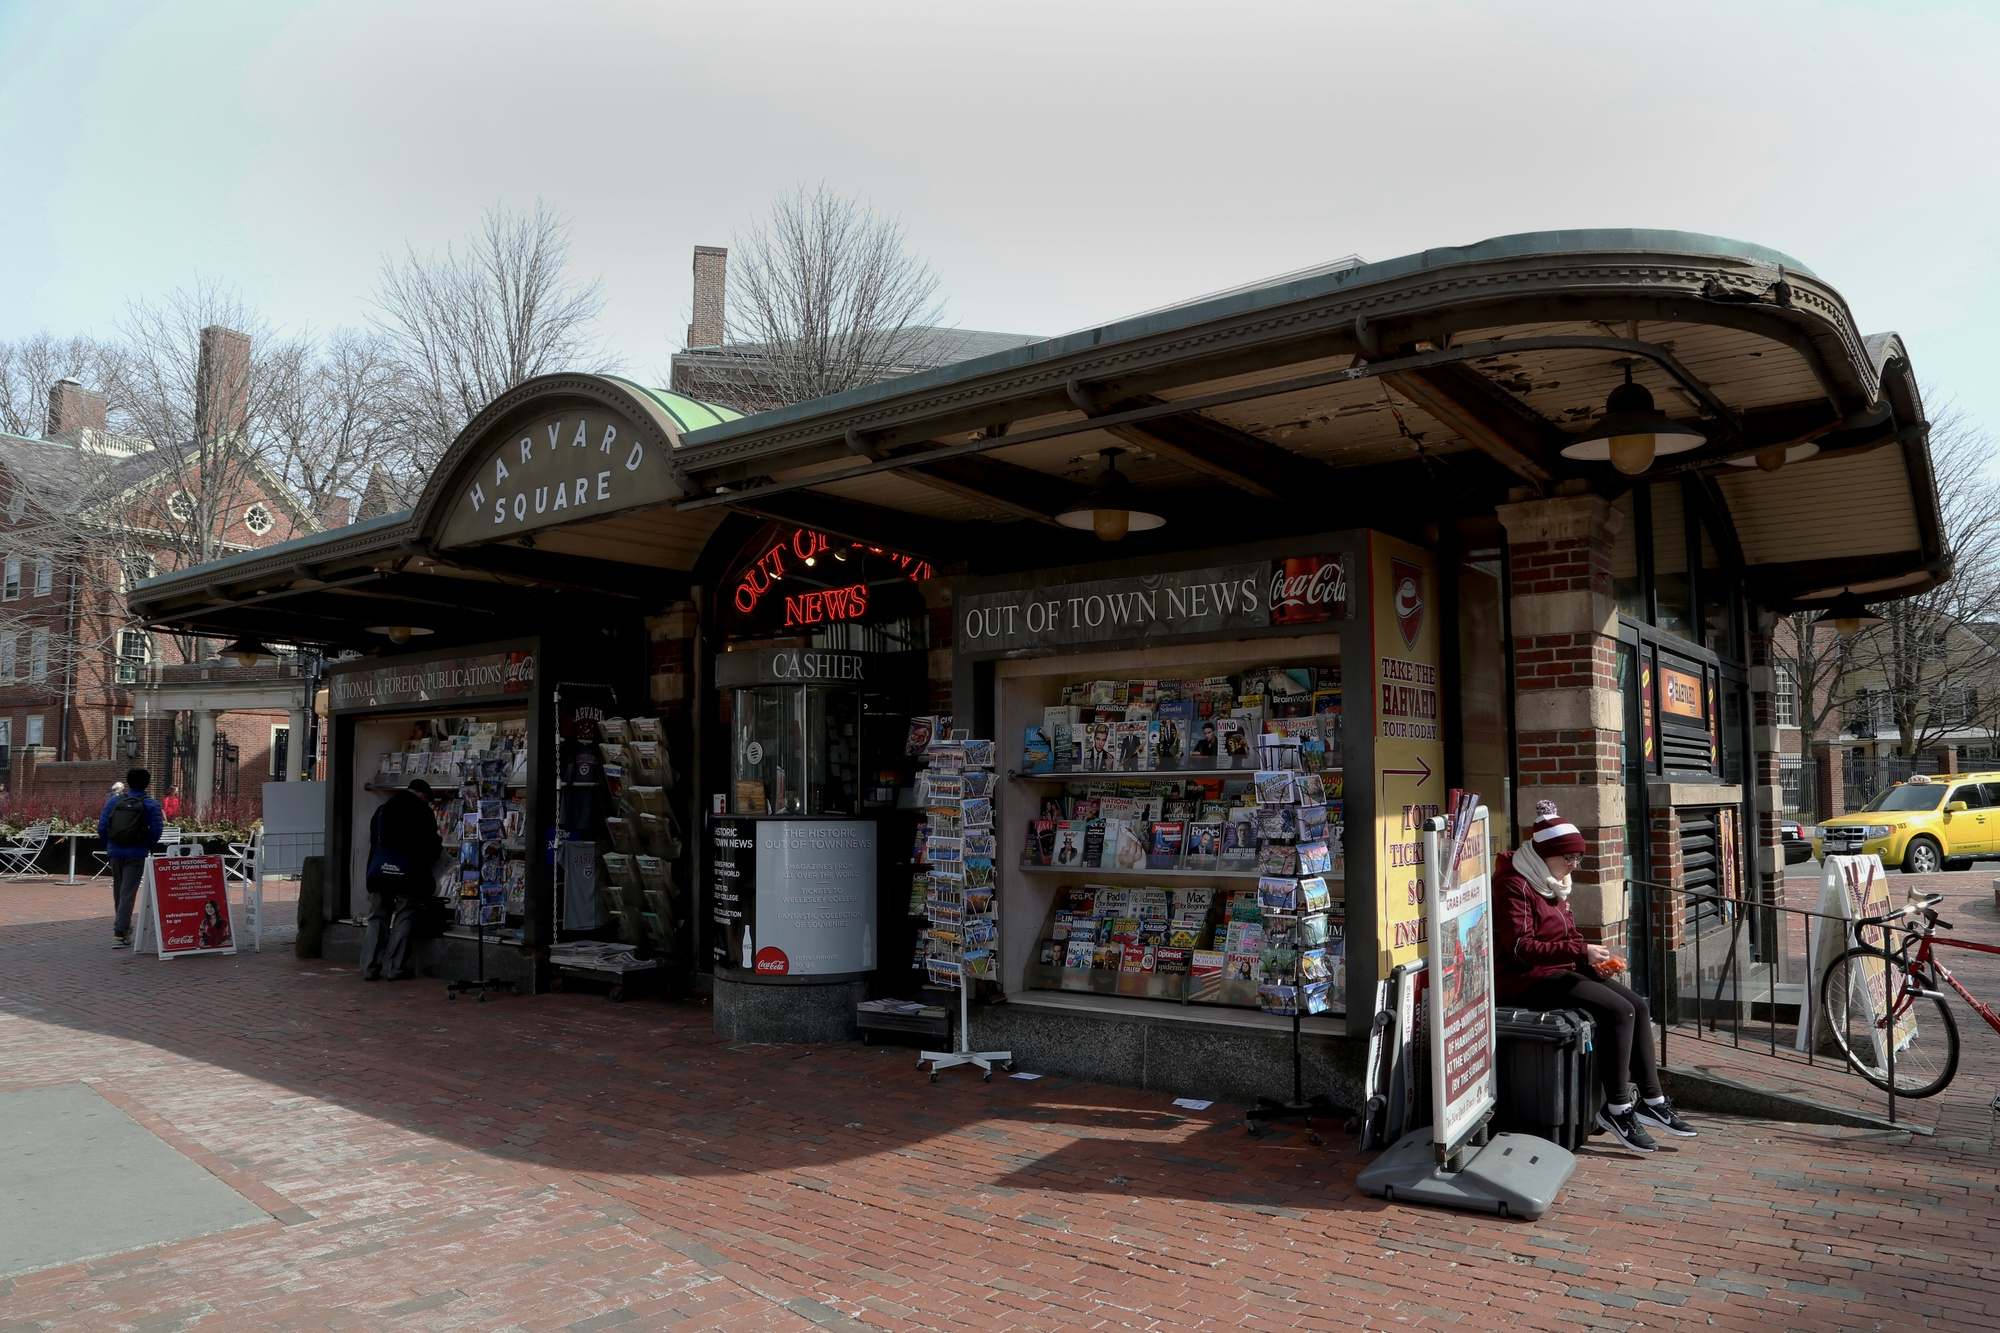 The Cambridge City Council discussed renovating the historic Out of Town News kiosk and the surrounding plaza at their meeting Monday night. The project would have a budget of $4.5 million.